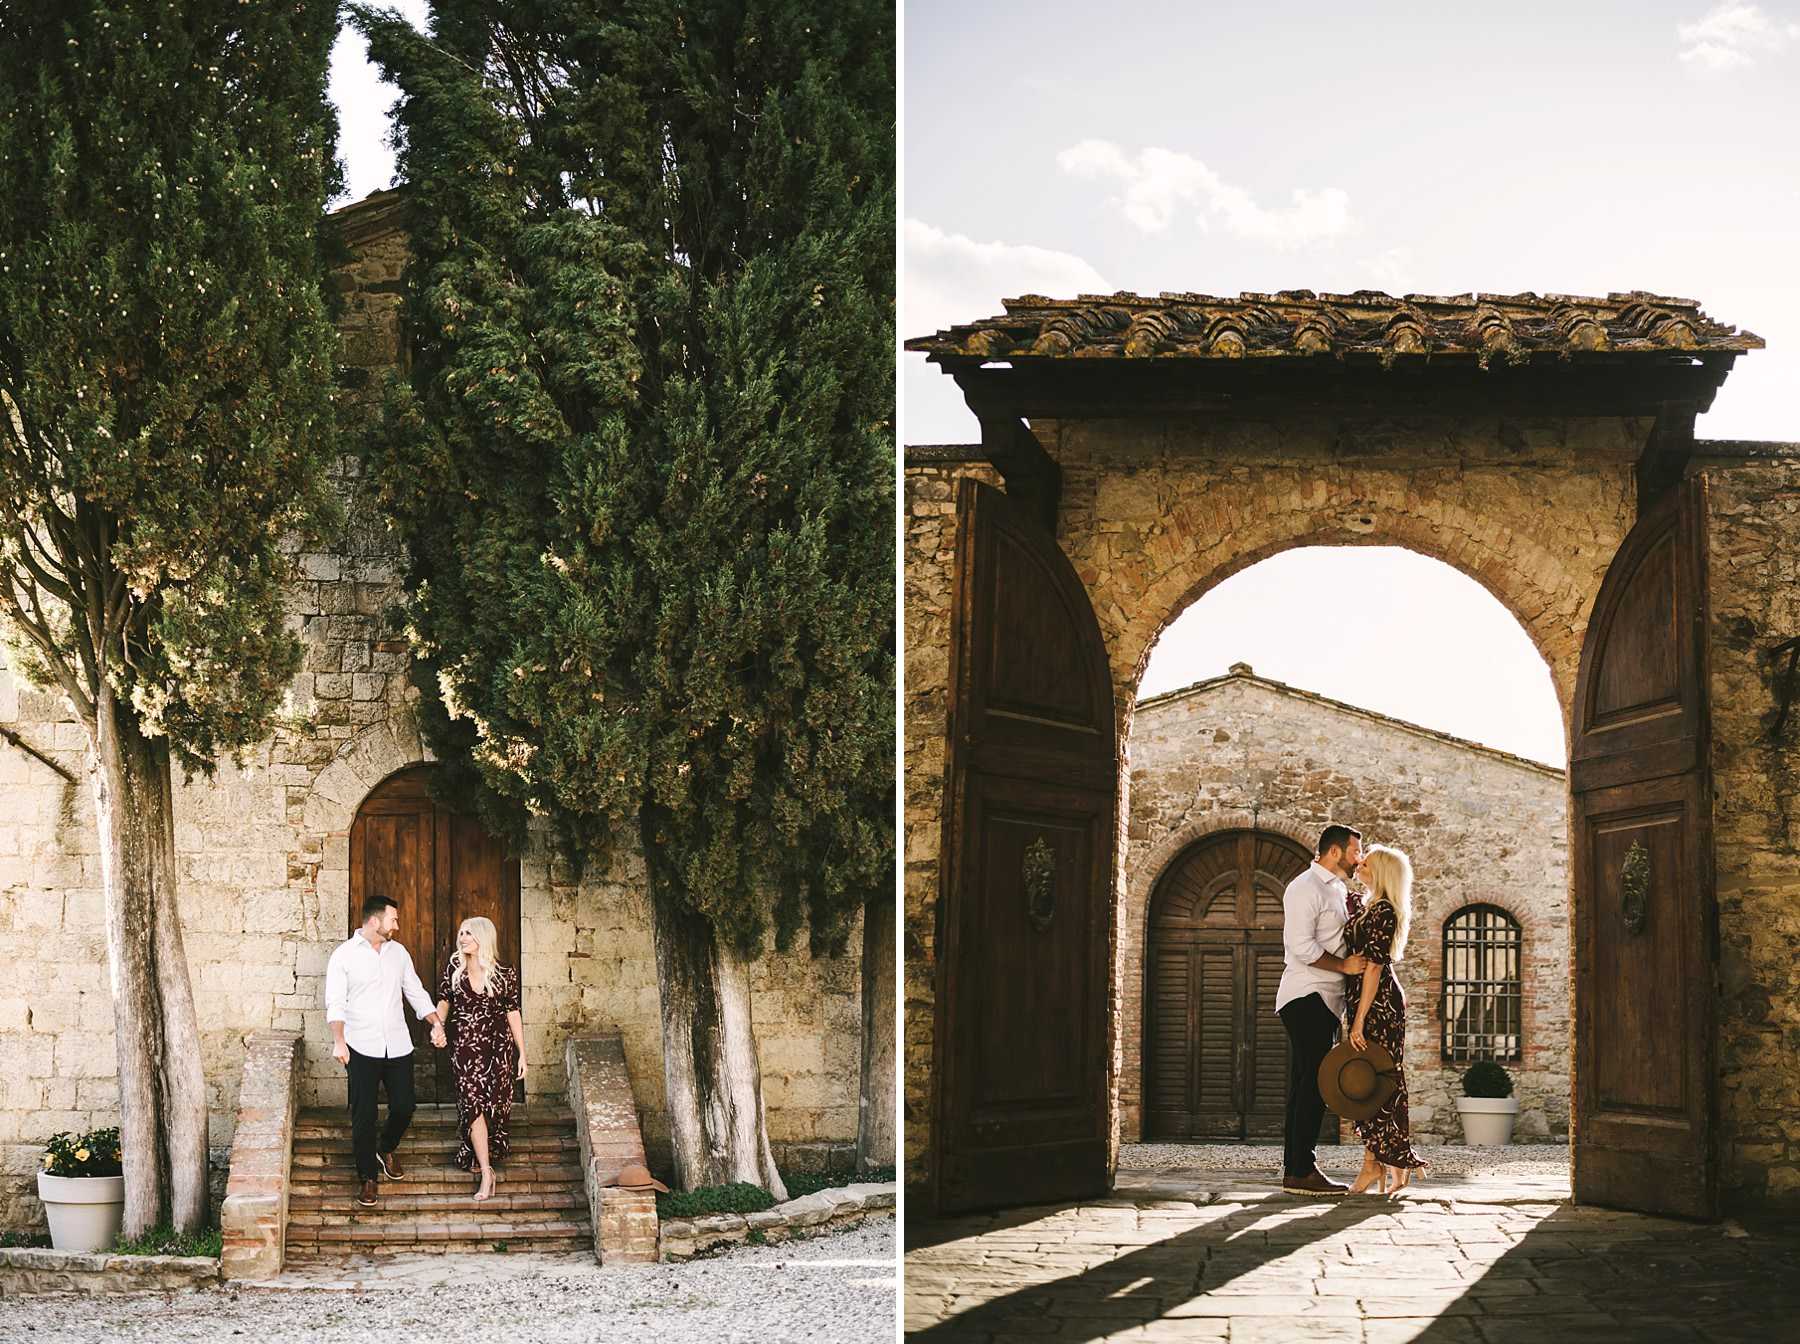 Lovely couple vacation photo session in Tuscany at the amazing location of Castello La Leccia